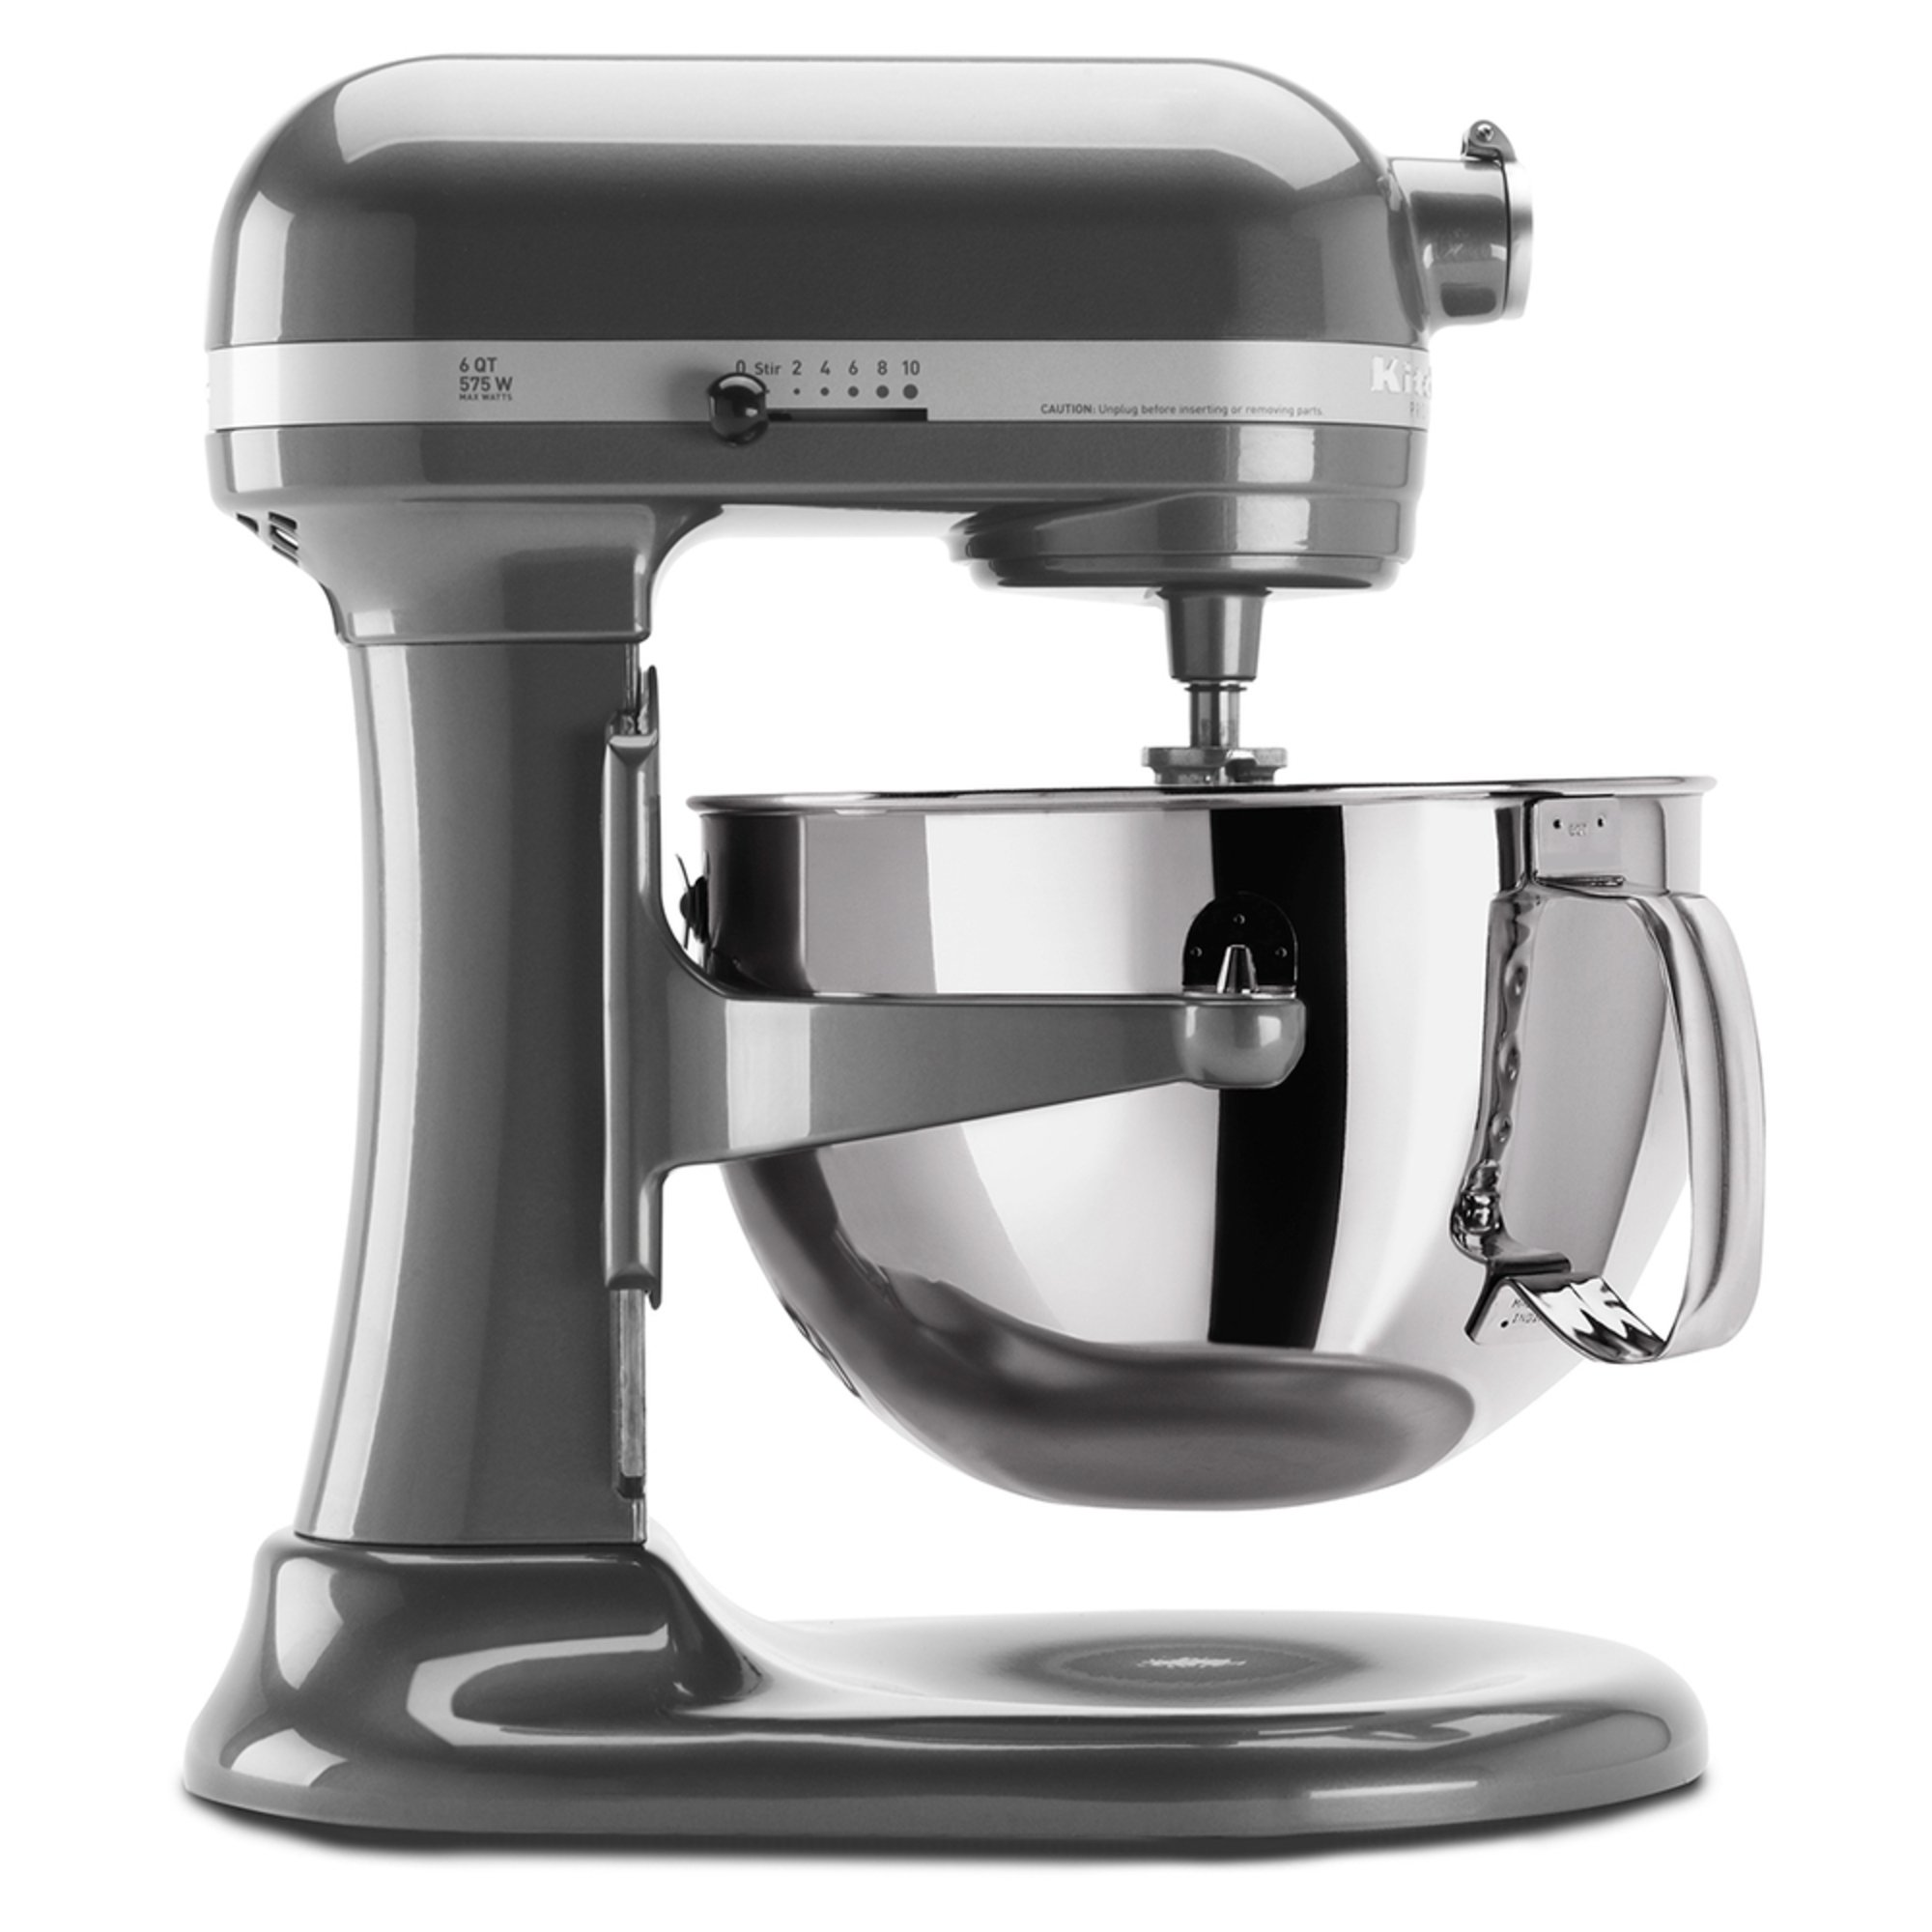 Kitchenaid Professional 600 Series 6-quart Bowl-lift Stand Mixer ...